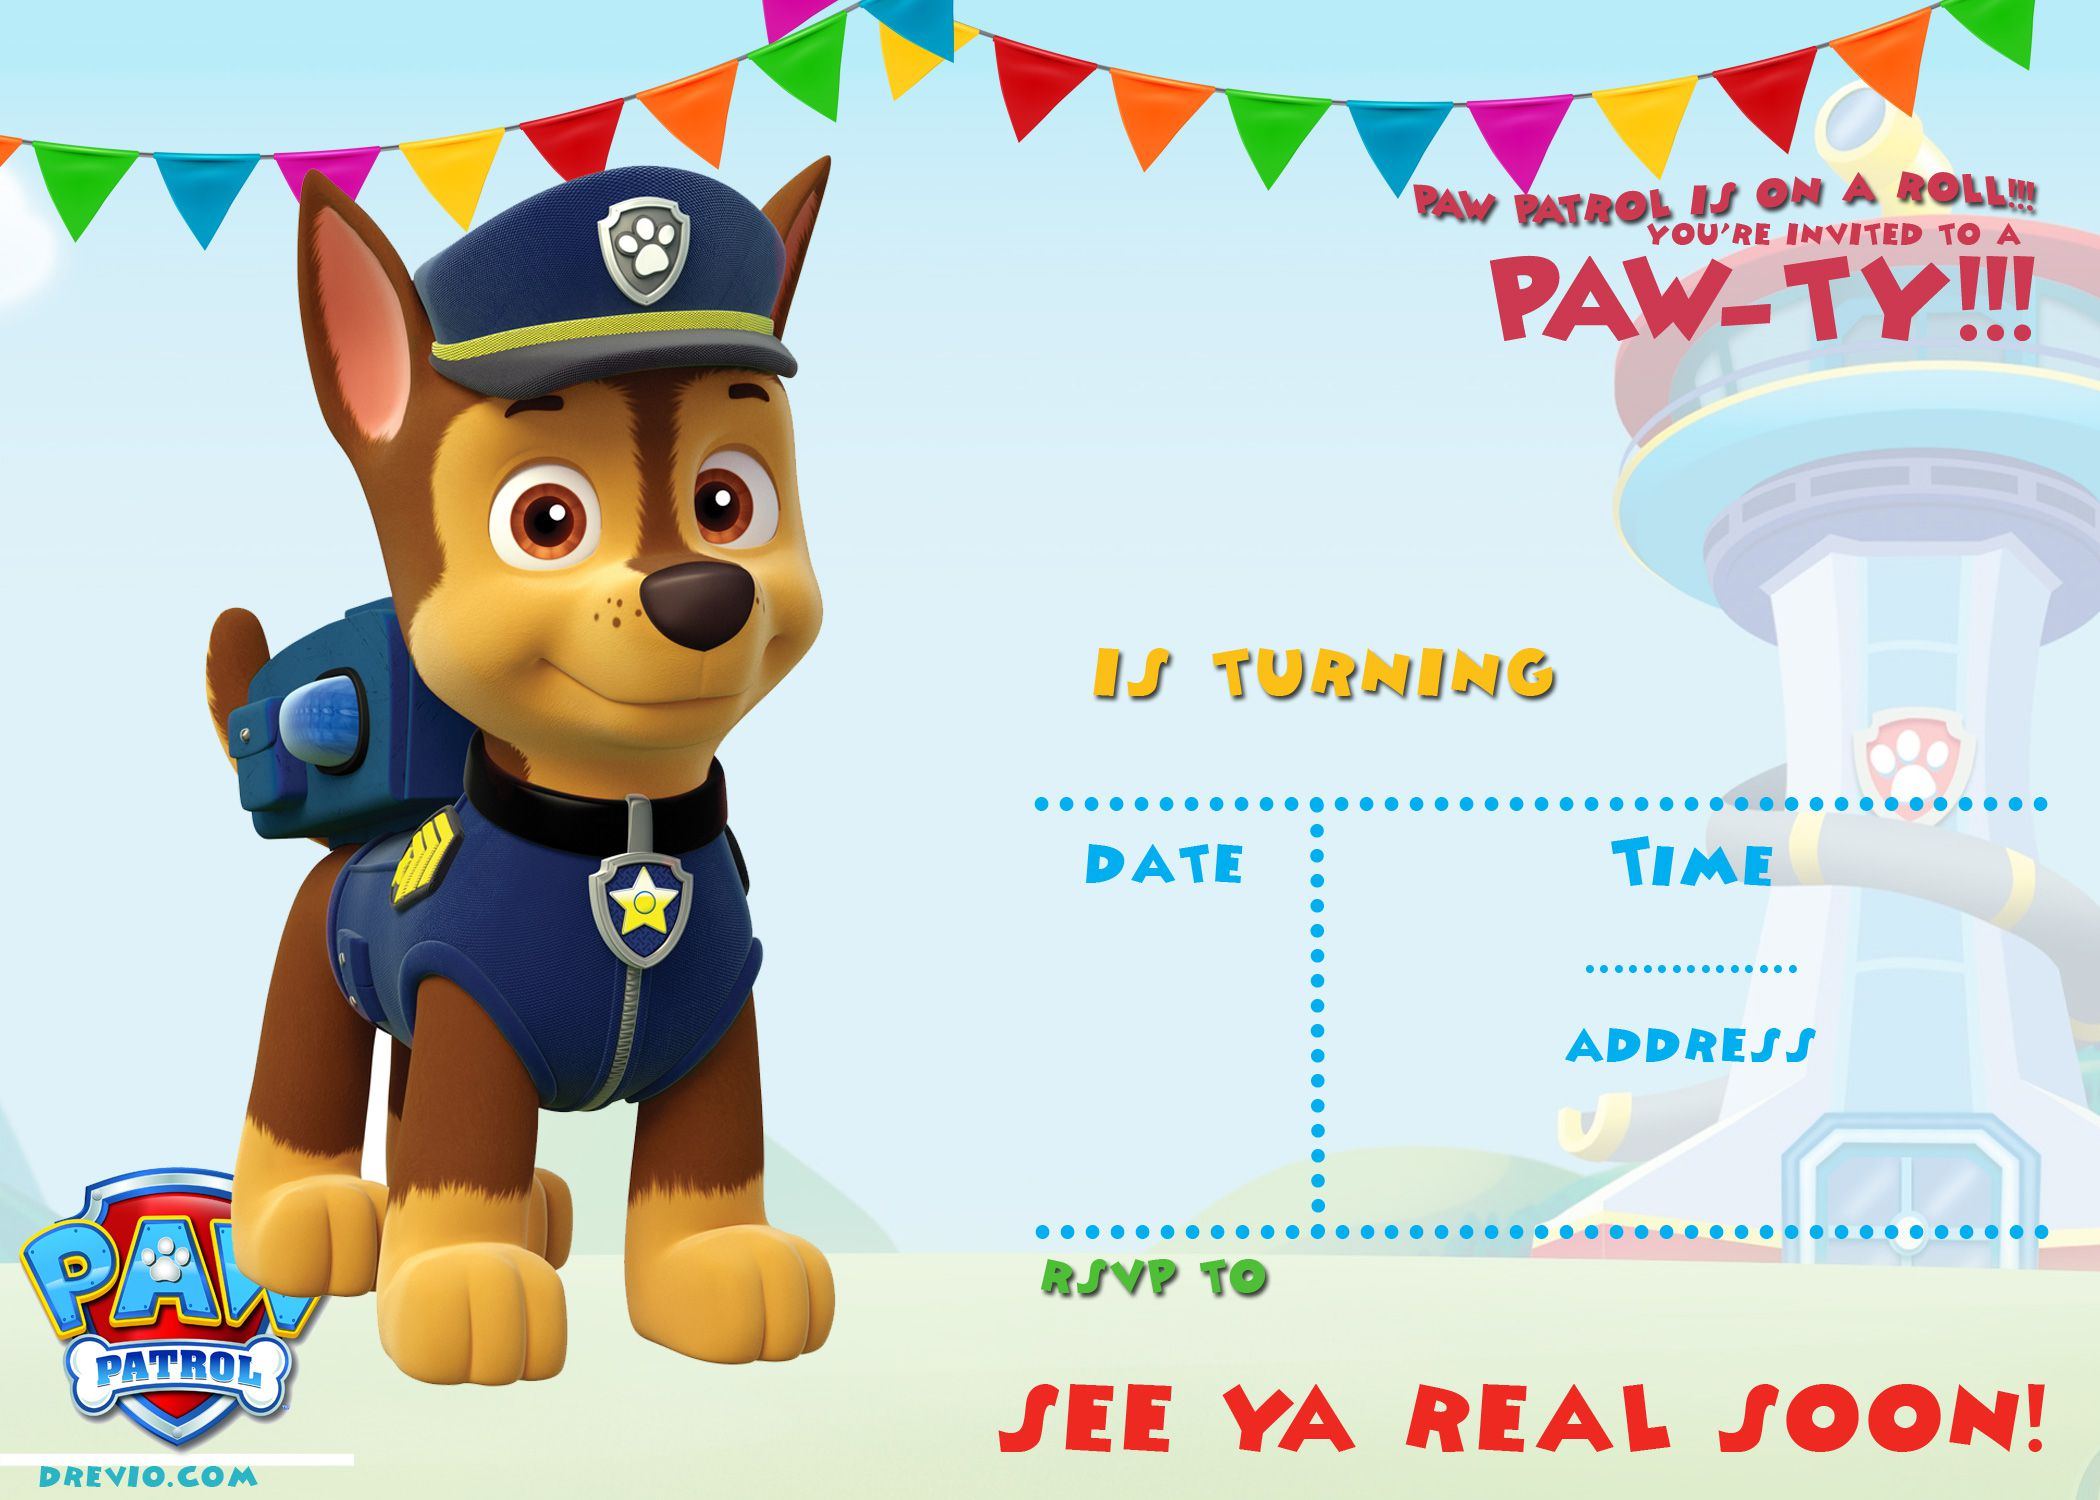 006 Staggering Paw Patrol Birthday Invitation Template Example  Party Invite Wording Skye FreeFull